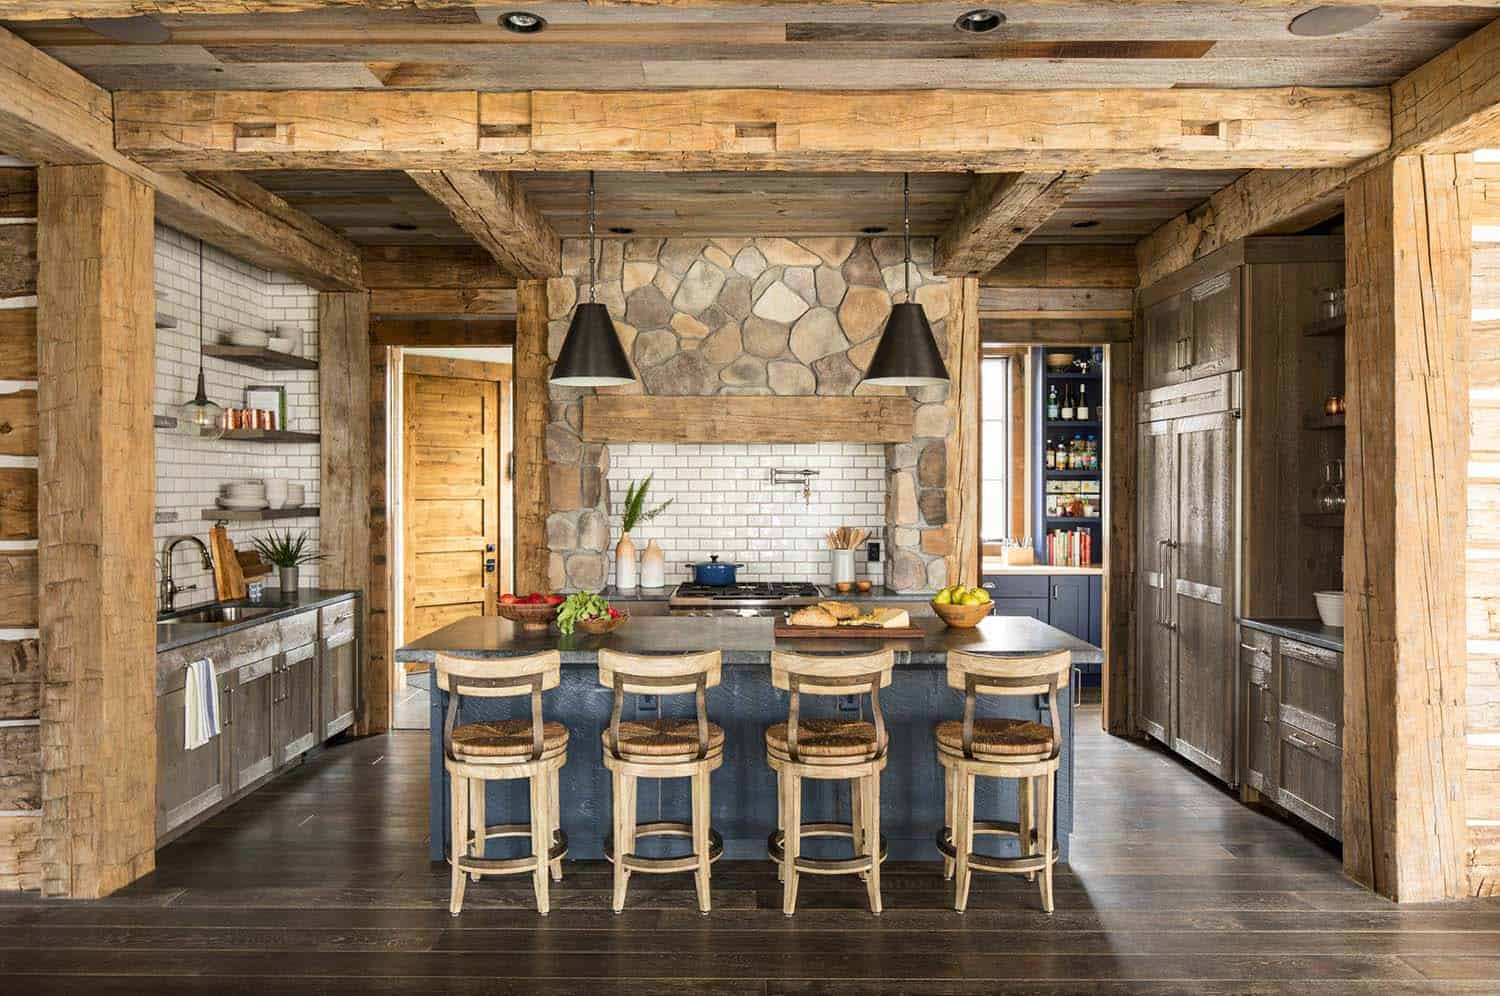 Rustic Lake House-Martha OHara Interiors-04-1 Kindesign